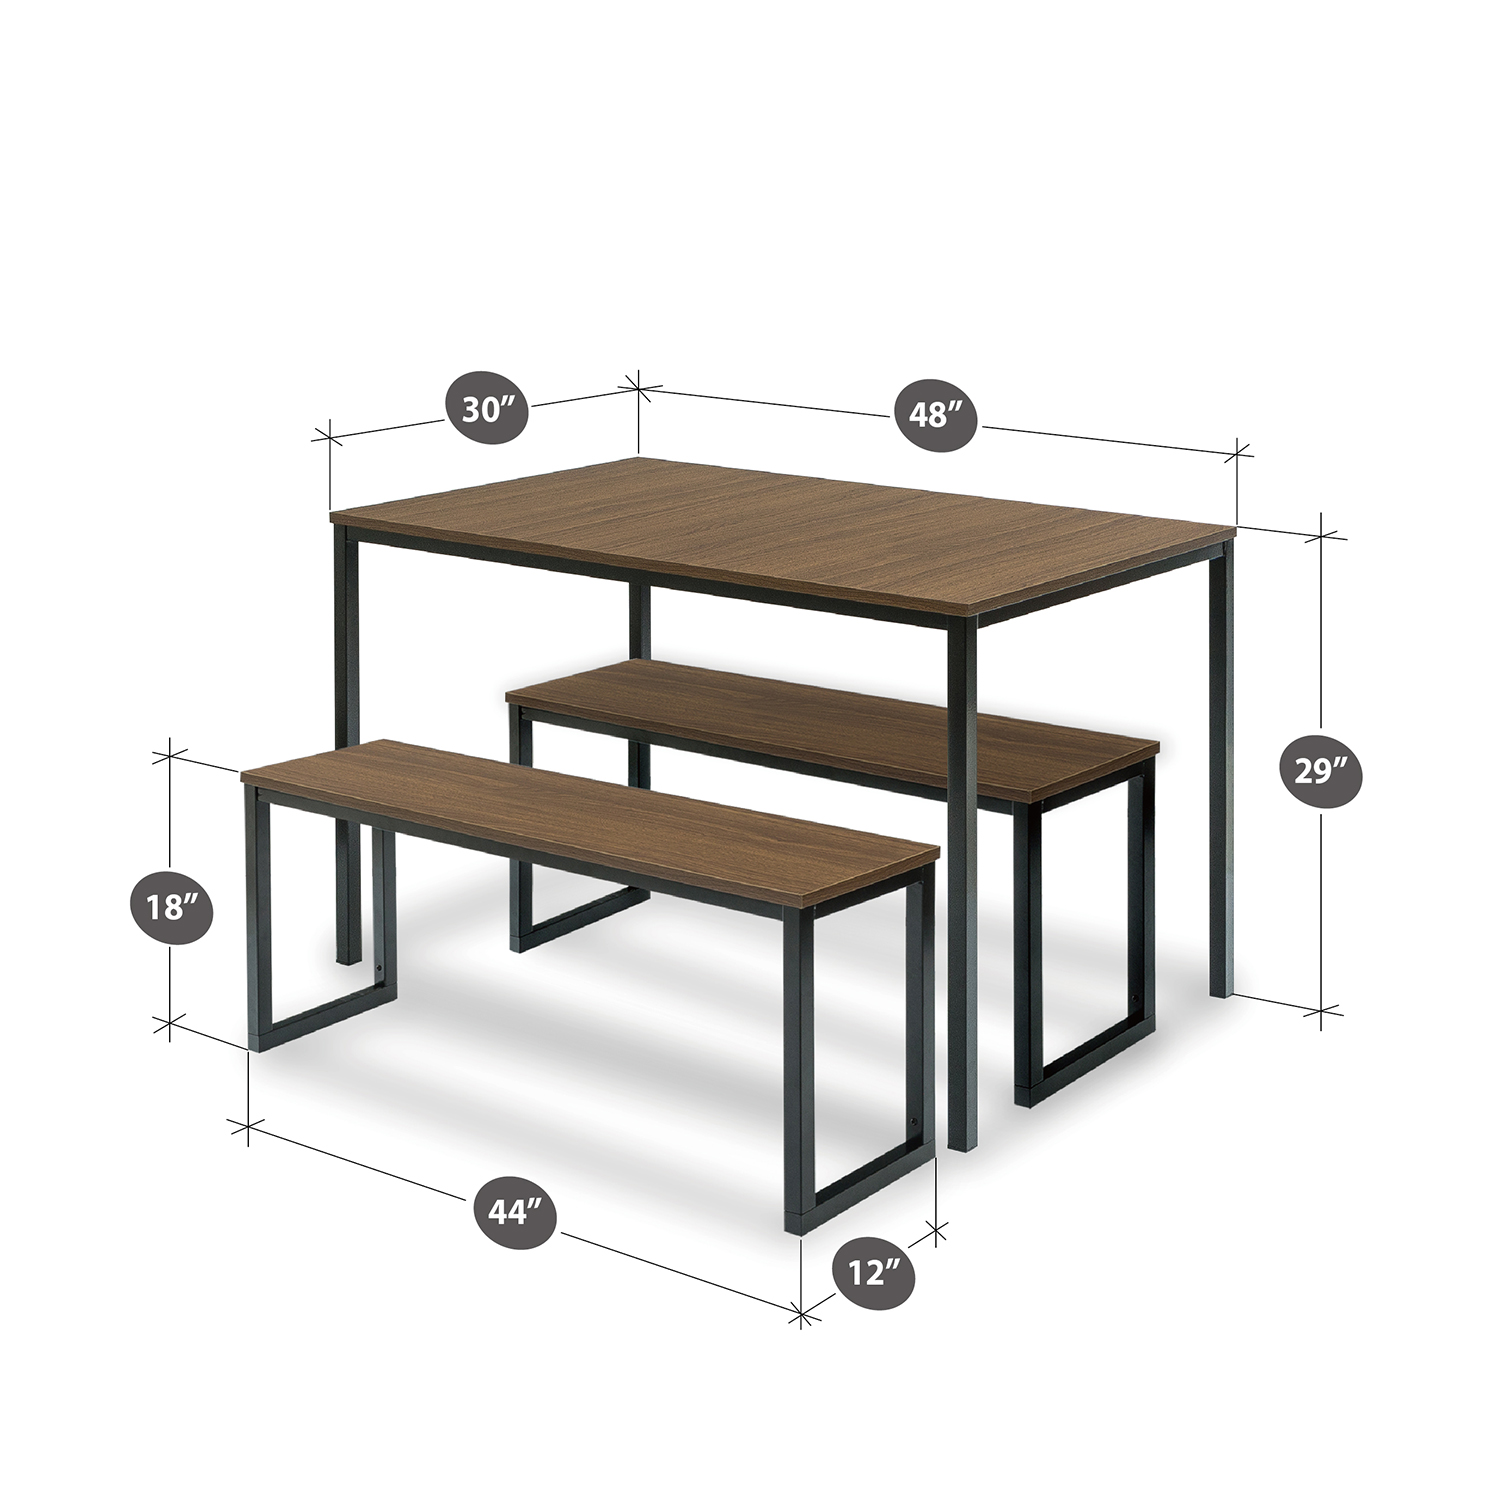 e8b4fdfcc Zinus Louis Modern Studio Collection Soho Dining Table with Two Dining  Benches